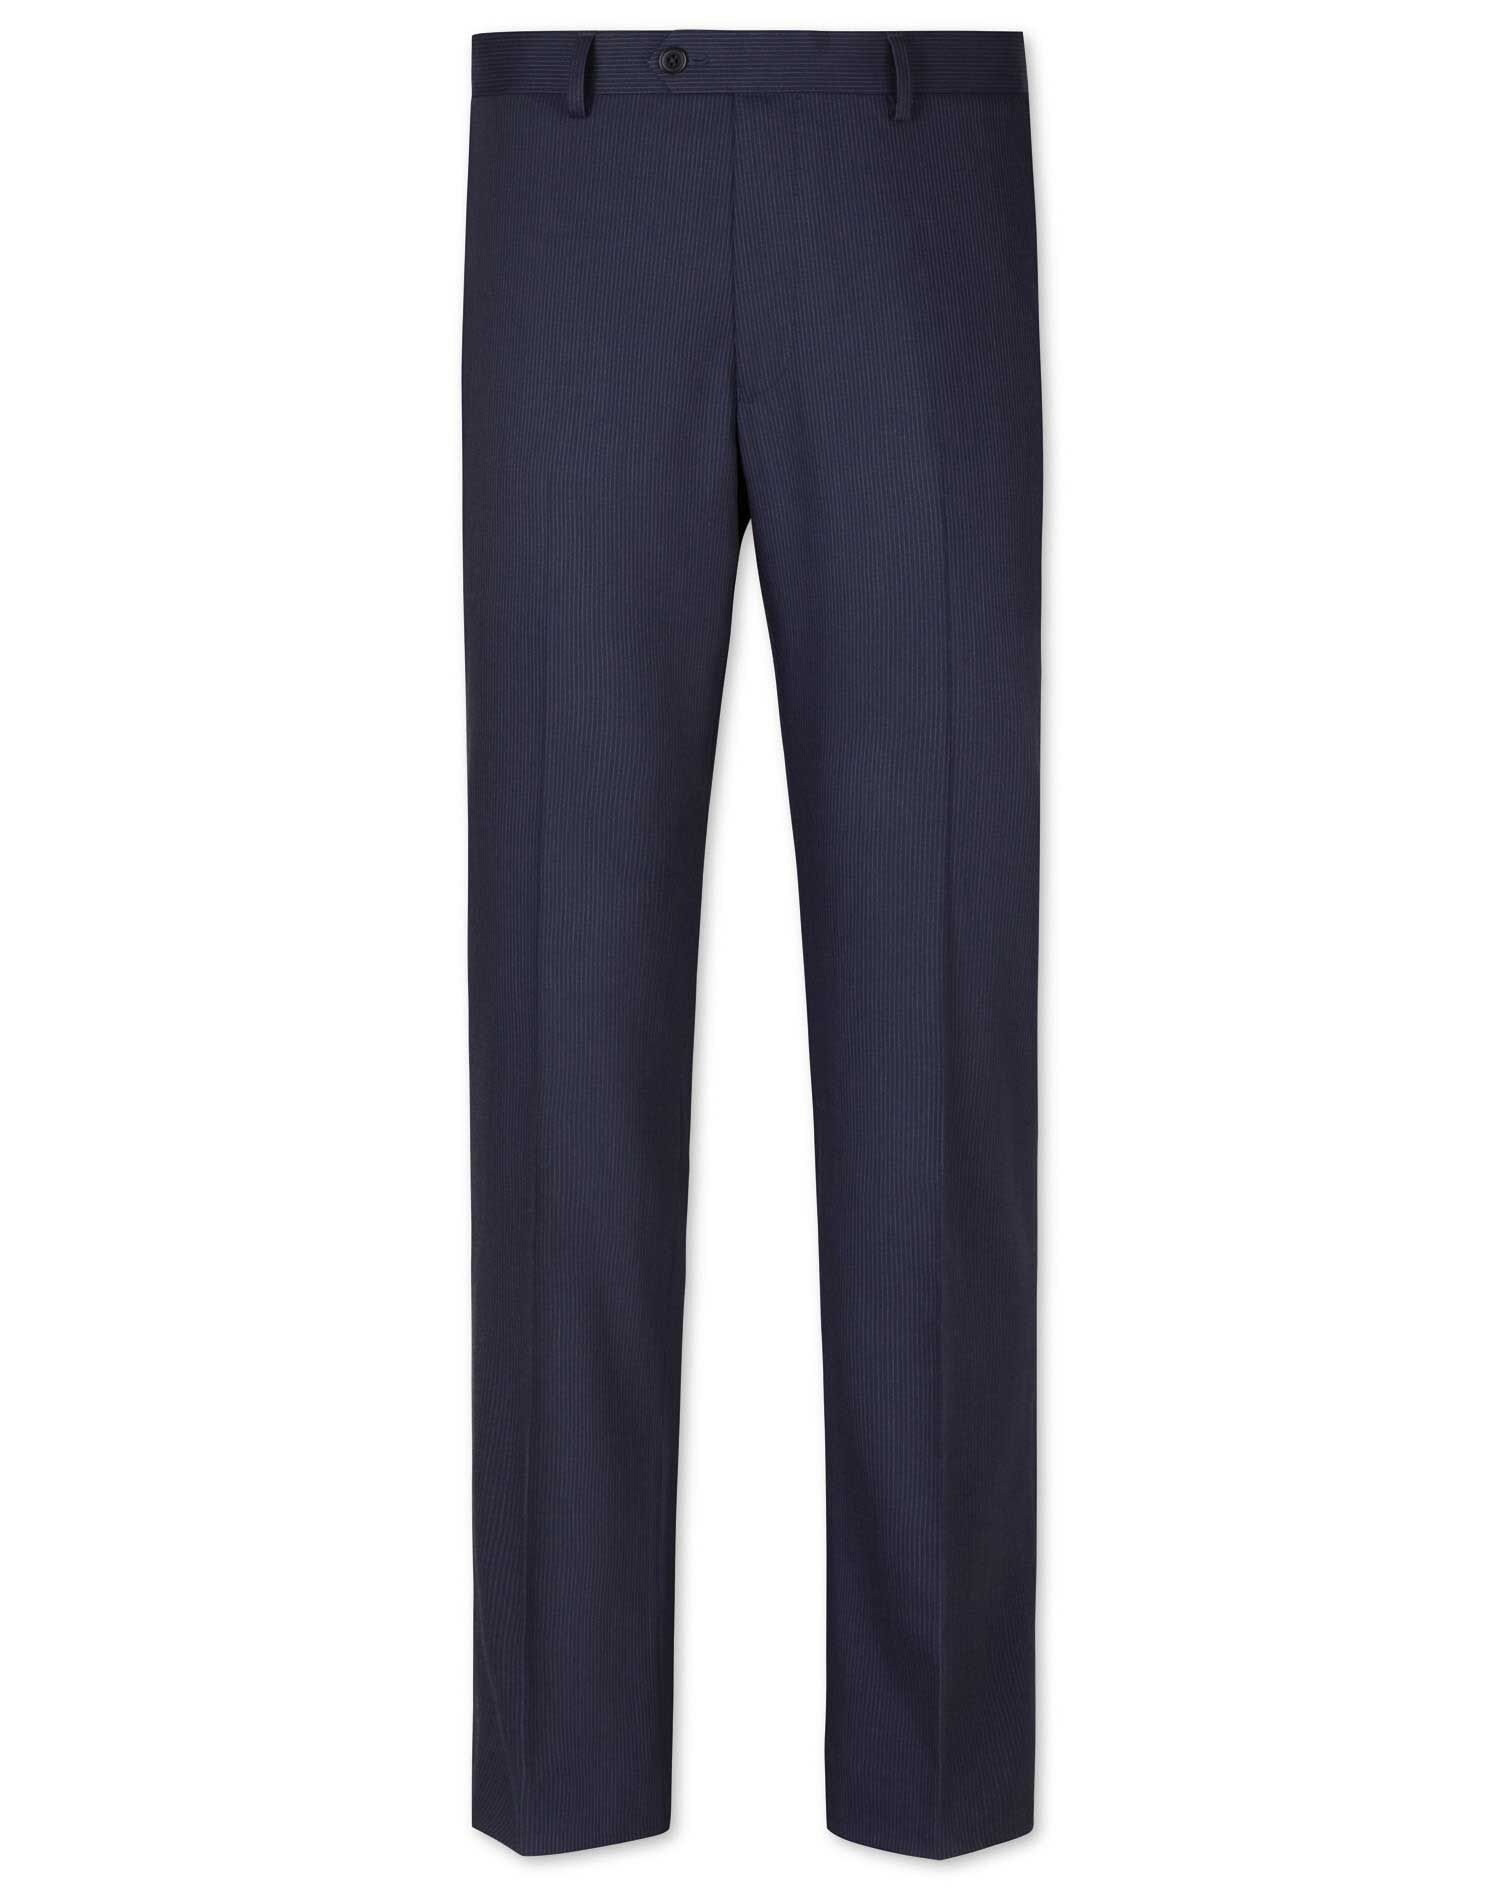 Blue Slim Fit Penwith Slim Stripe Business Suit Trouser Size W36 L30 by Charles Tyrwhitt